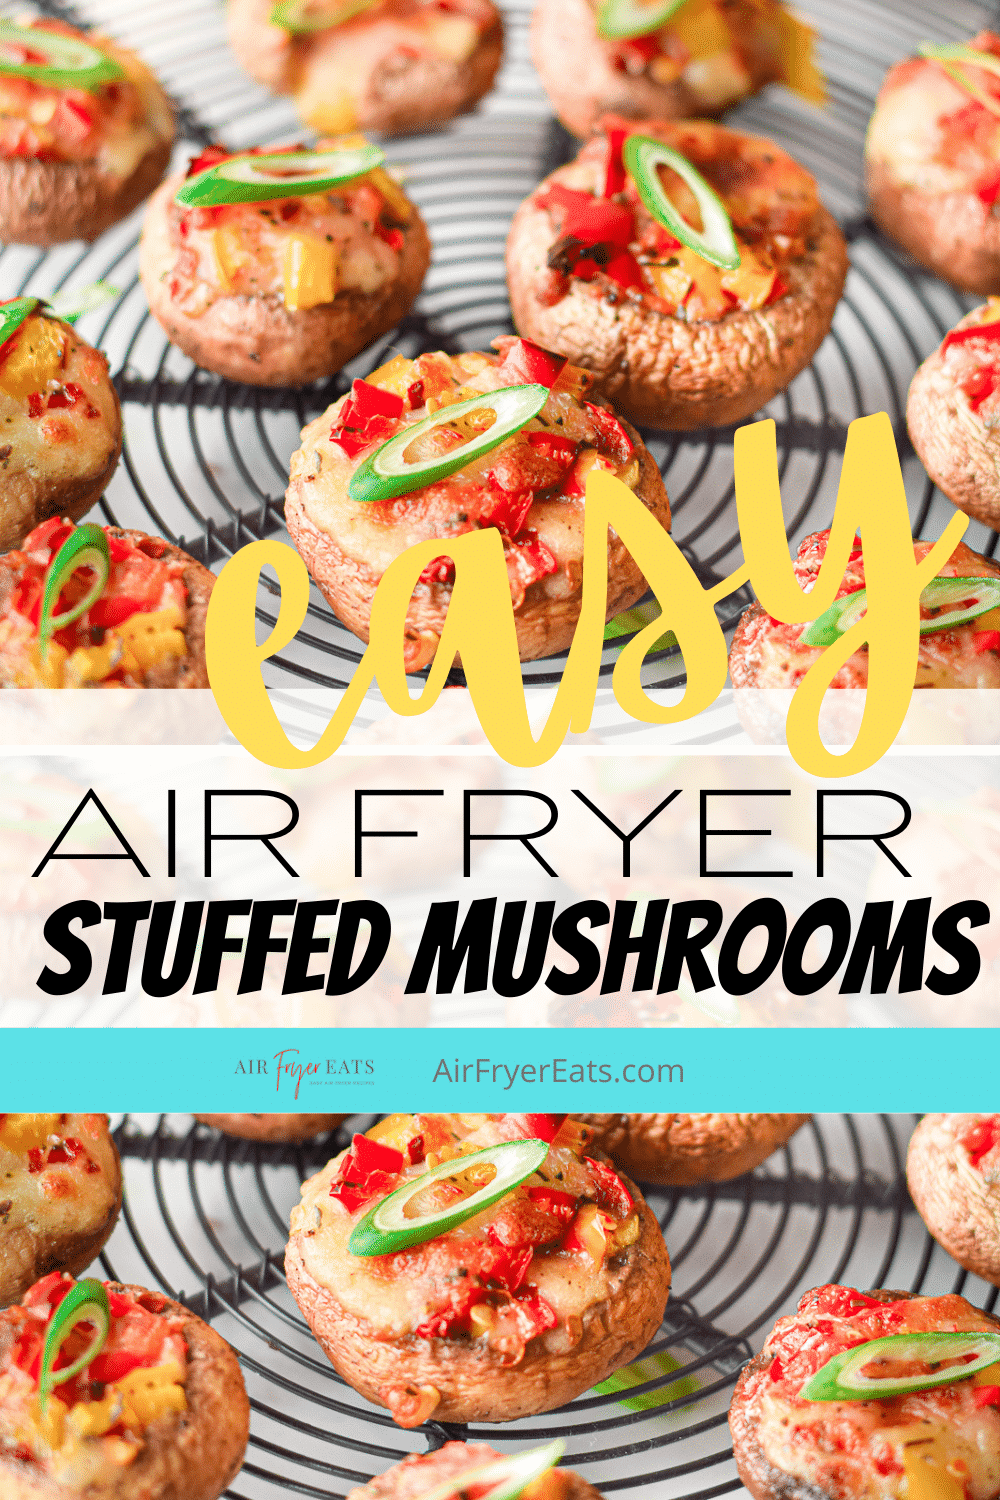 Air Fryer Stuffed Mushrooms are the vegetarian appetizer everyone wants to eat! These yummy stuffed mushroom caps are filled with gooey mozzarella cheese, red and yellow bell peppers, and a delicious Italian seasoning blend. #vegetarianapps #meatlessmonday #stuffedmushrooms via @vegetarianmamma